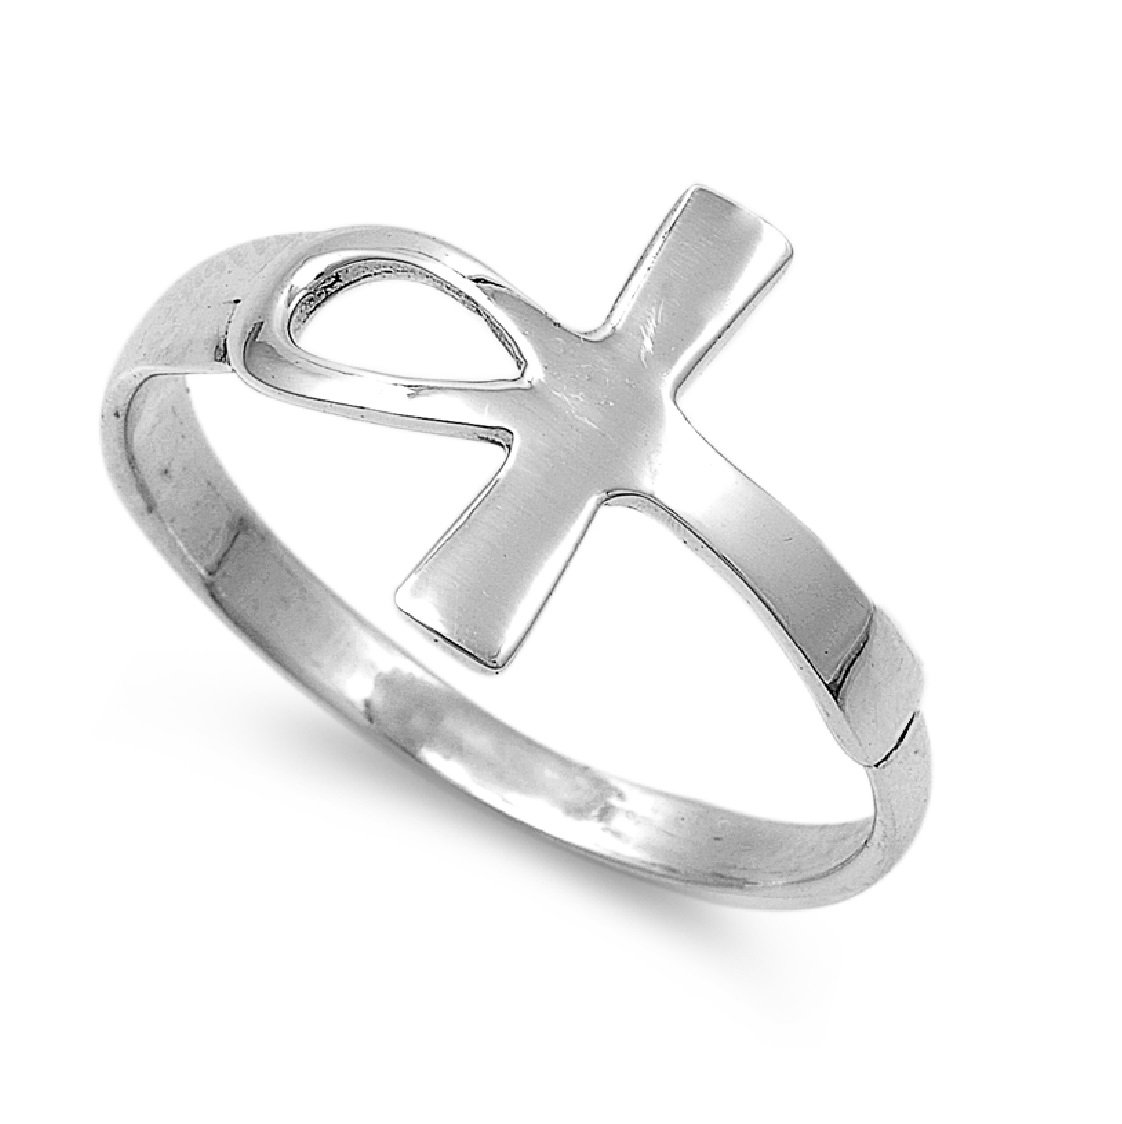 CloseoutWarehouse Sterling Silver Protection from Harm Ankh Cross Ring Size 11